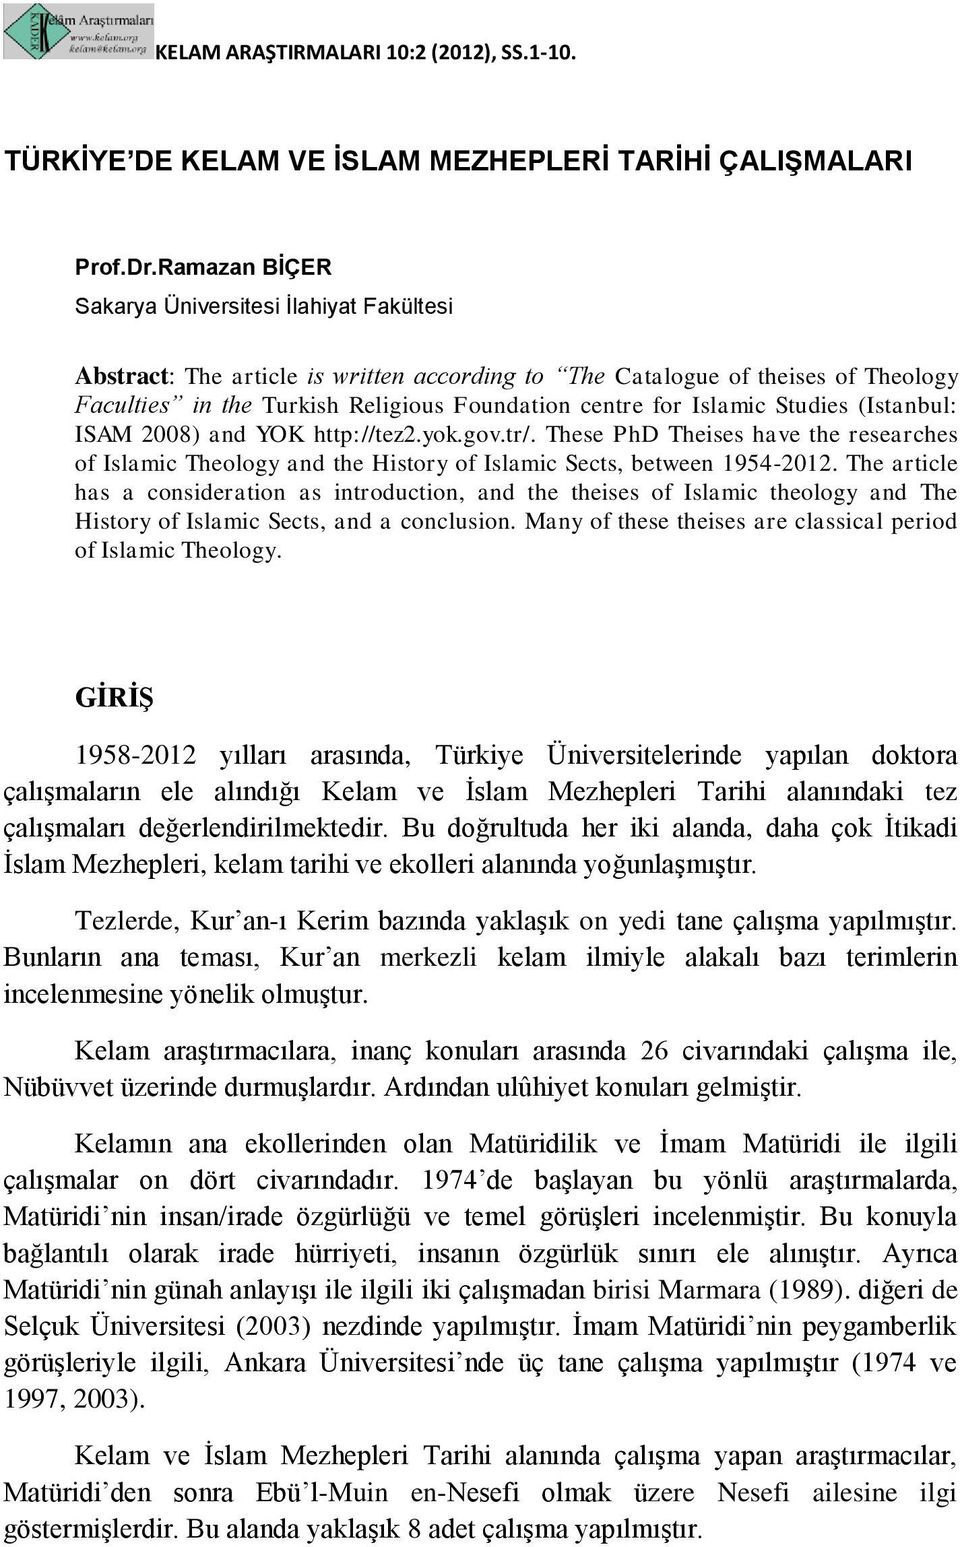 Islamic Studies (Istanbul: ISAM 2008) and YOK http://tez2.yok.gov.tr/. These PhD Theises have the researches of Islamic Theology and the History of Islamic Sects, between 1954-2012.